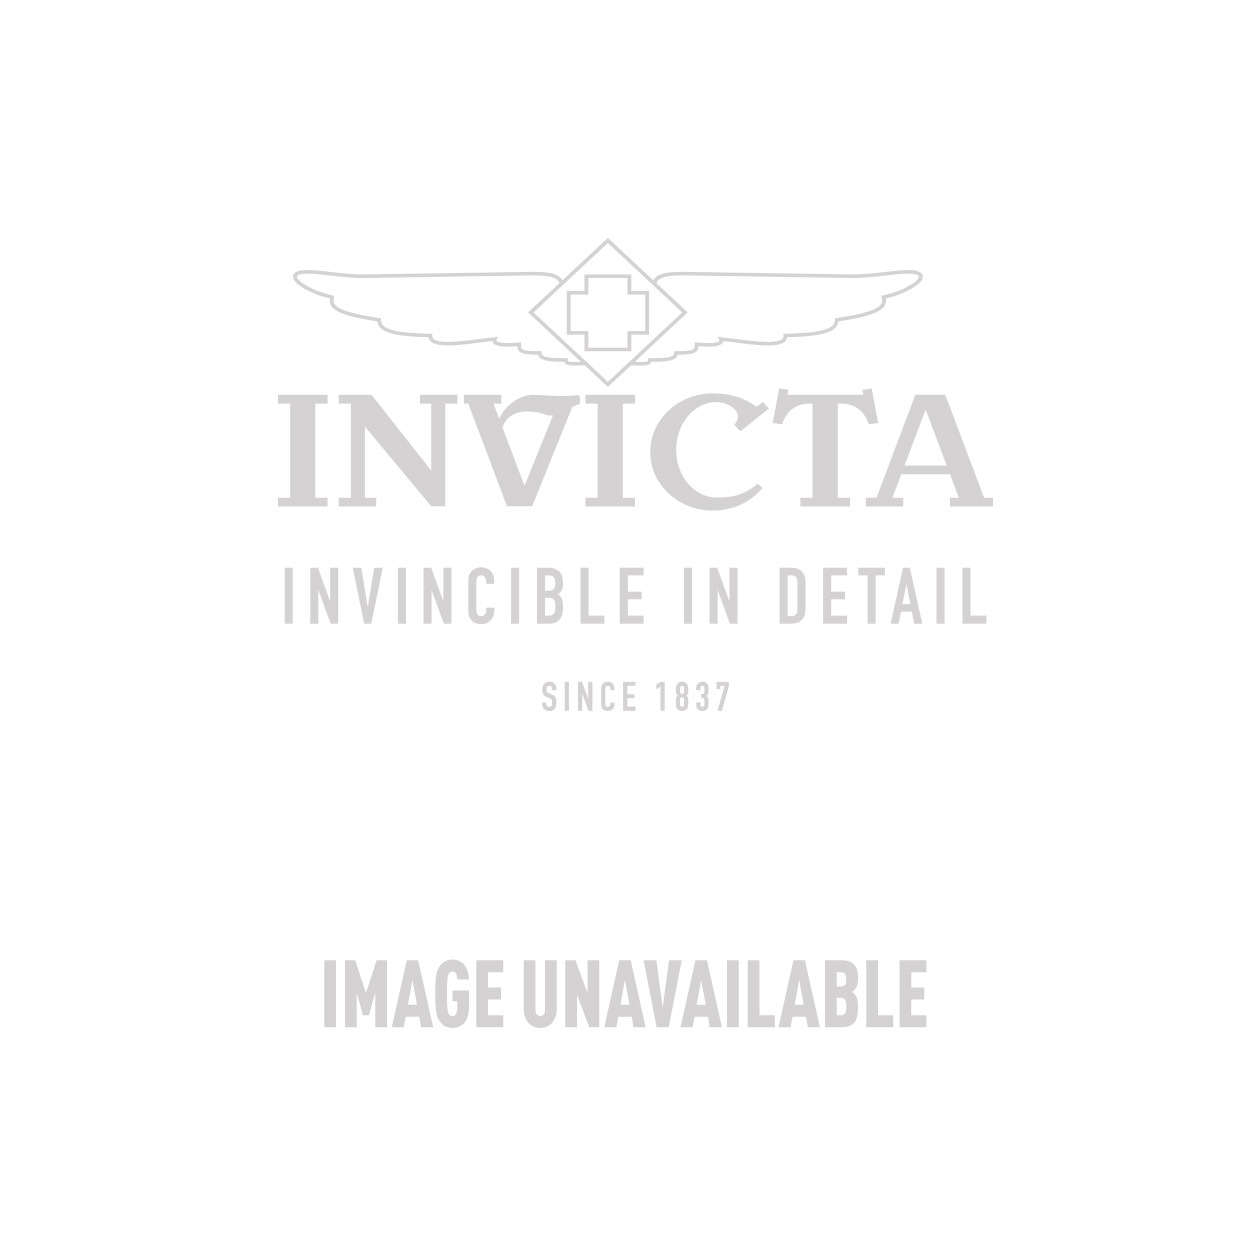 Invicta Specialty Quartz Watch - Stainless Steel case Stainless Steel band - Model 15211